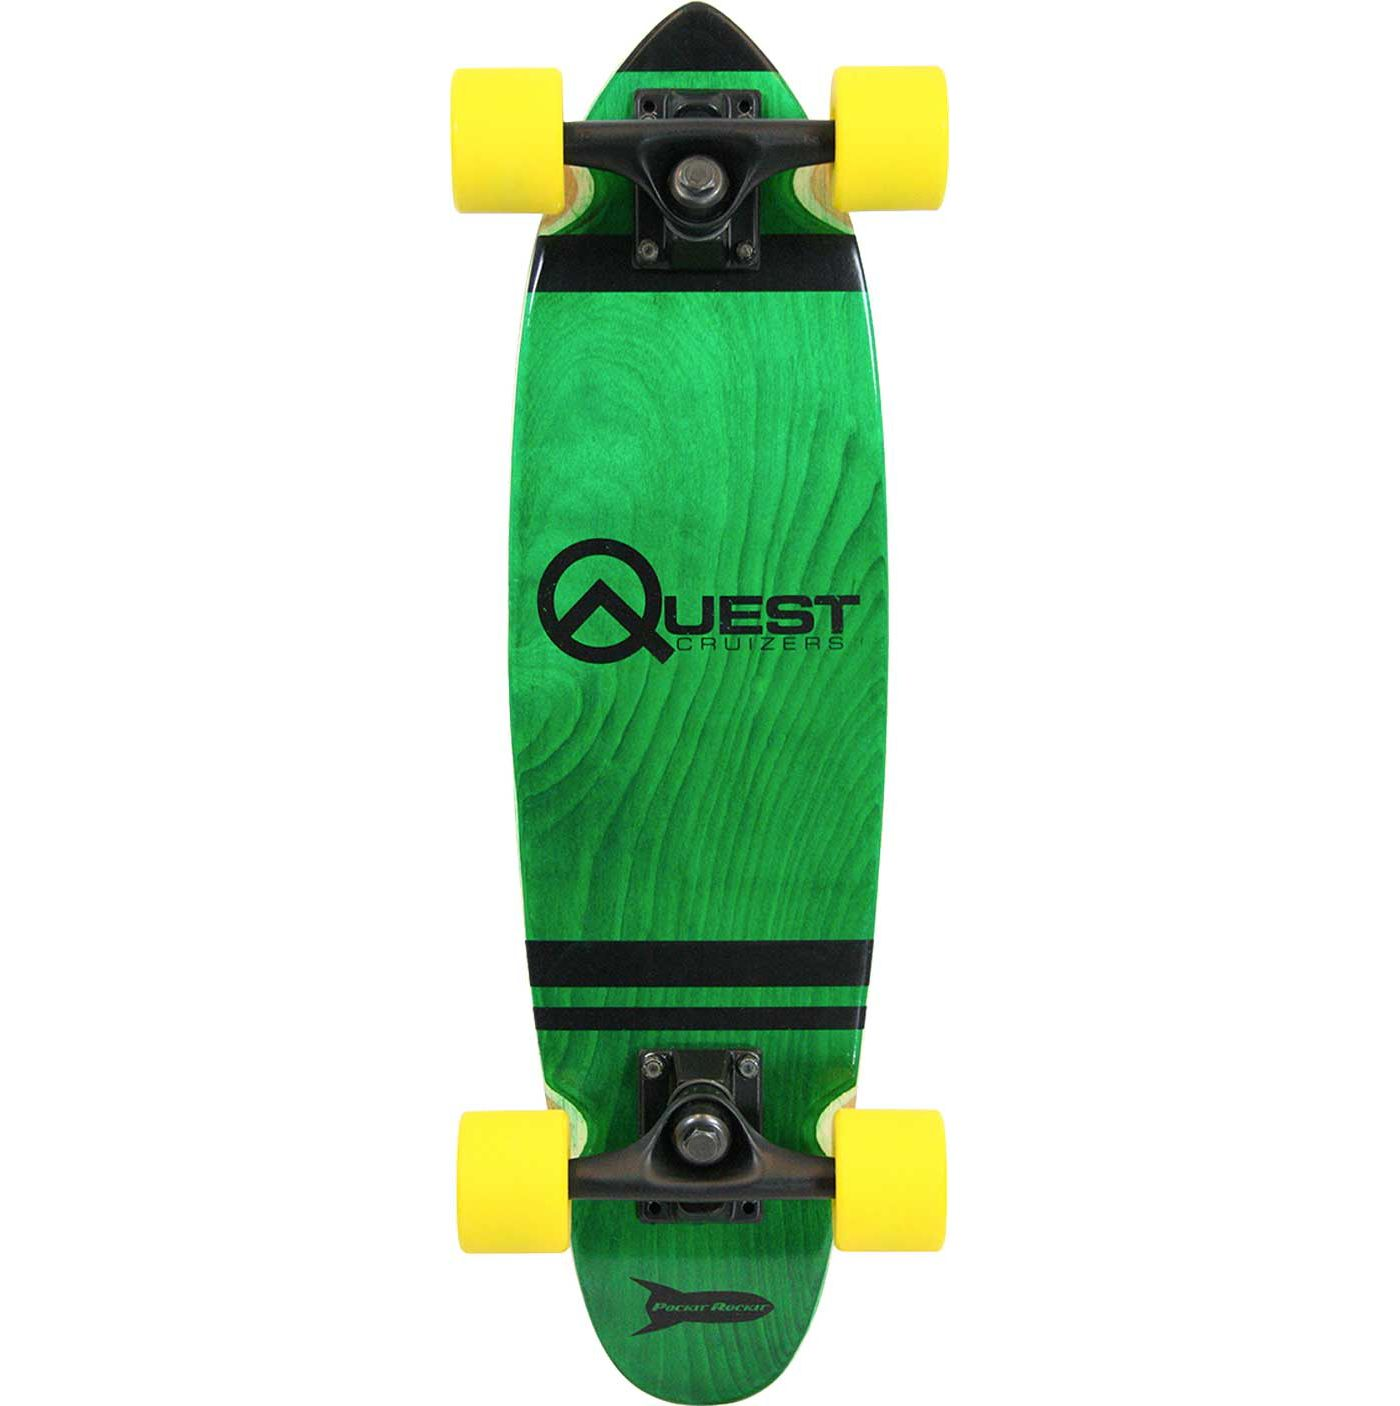 Quest 24'' Pockit Rockit Skateboard